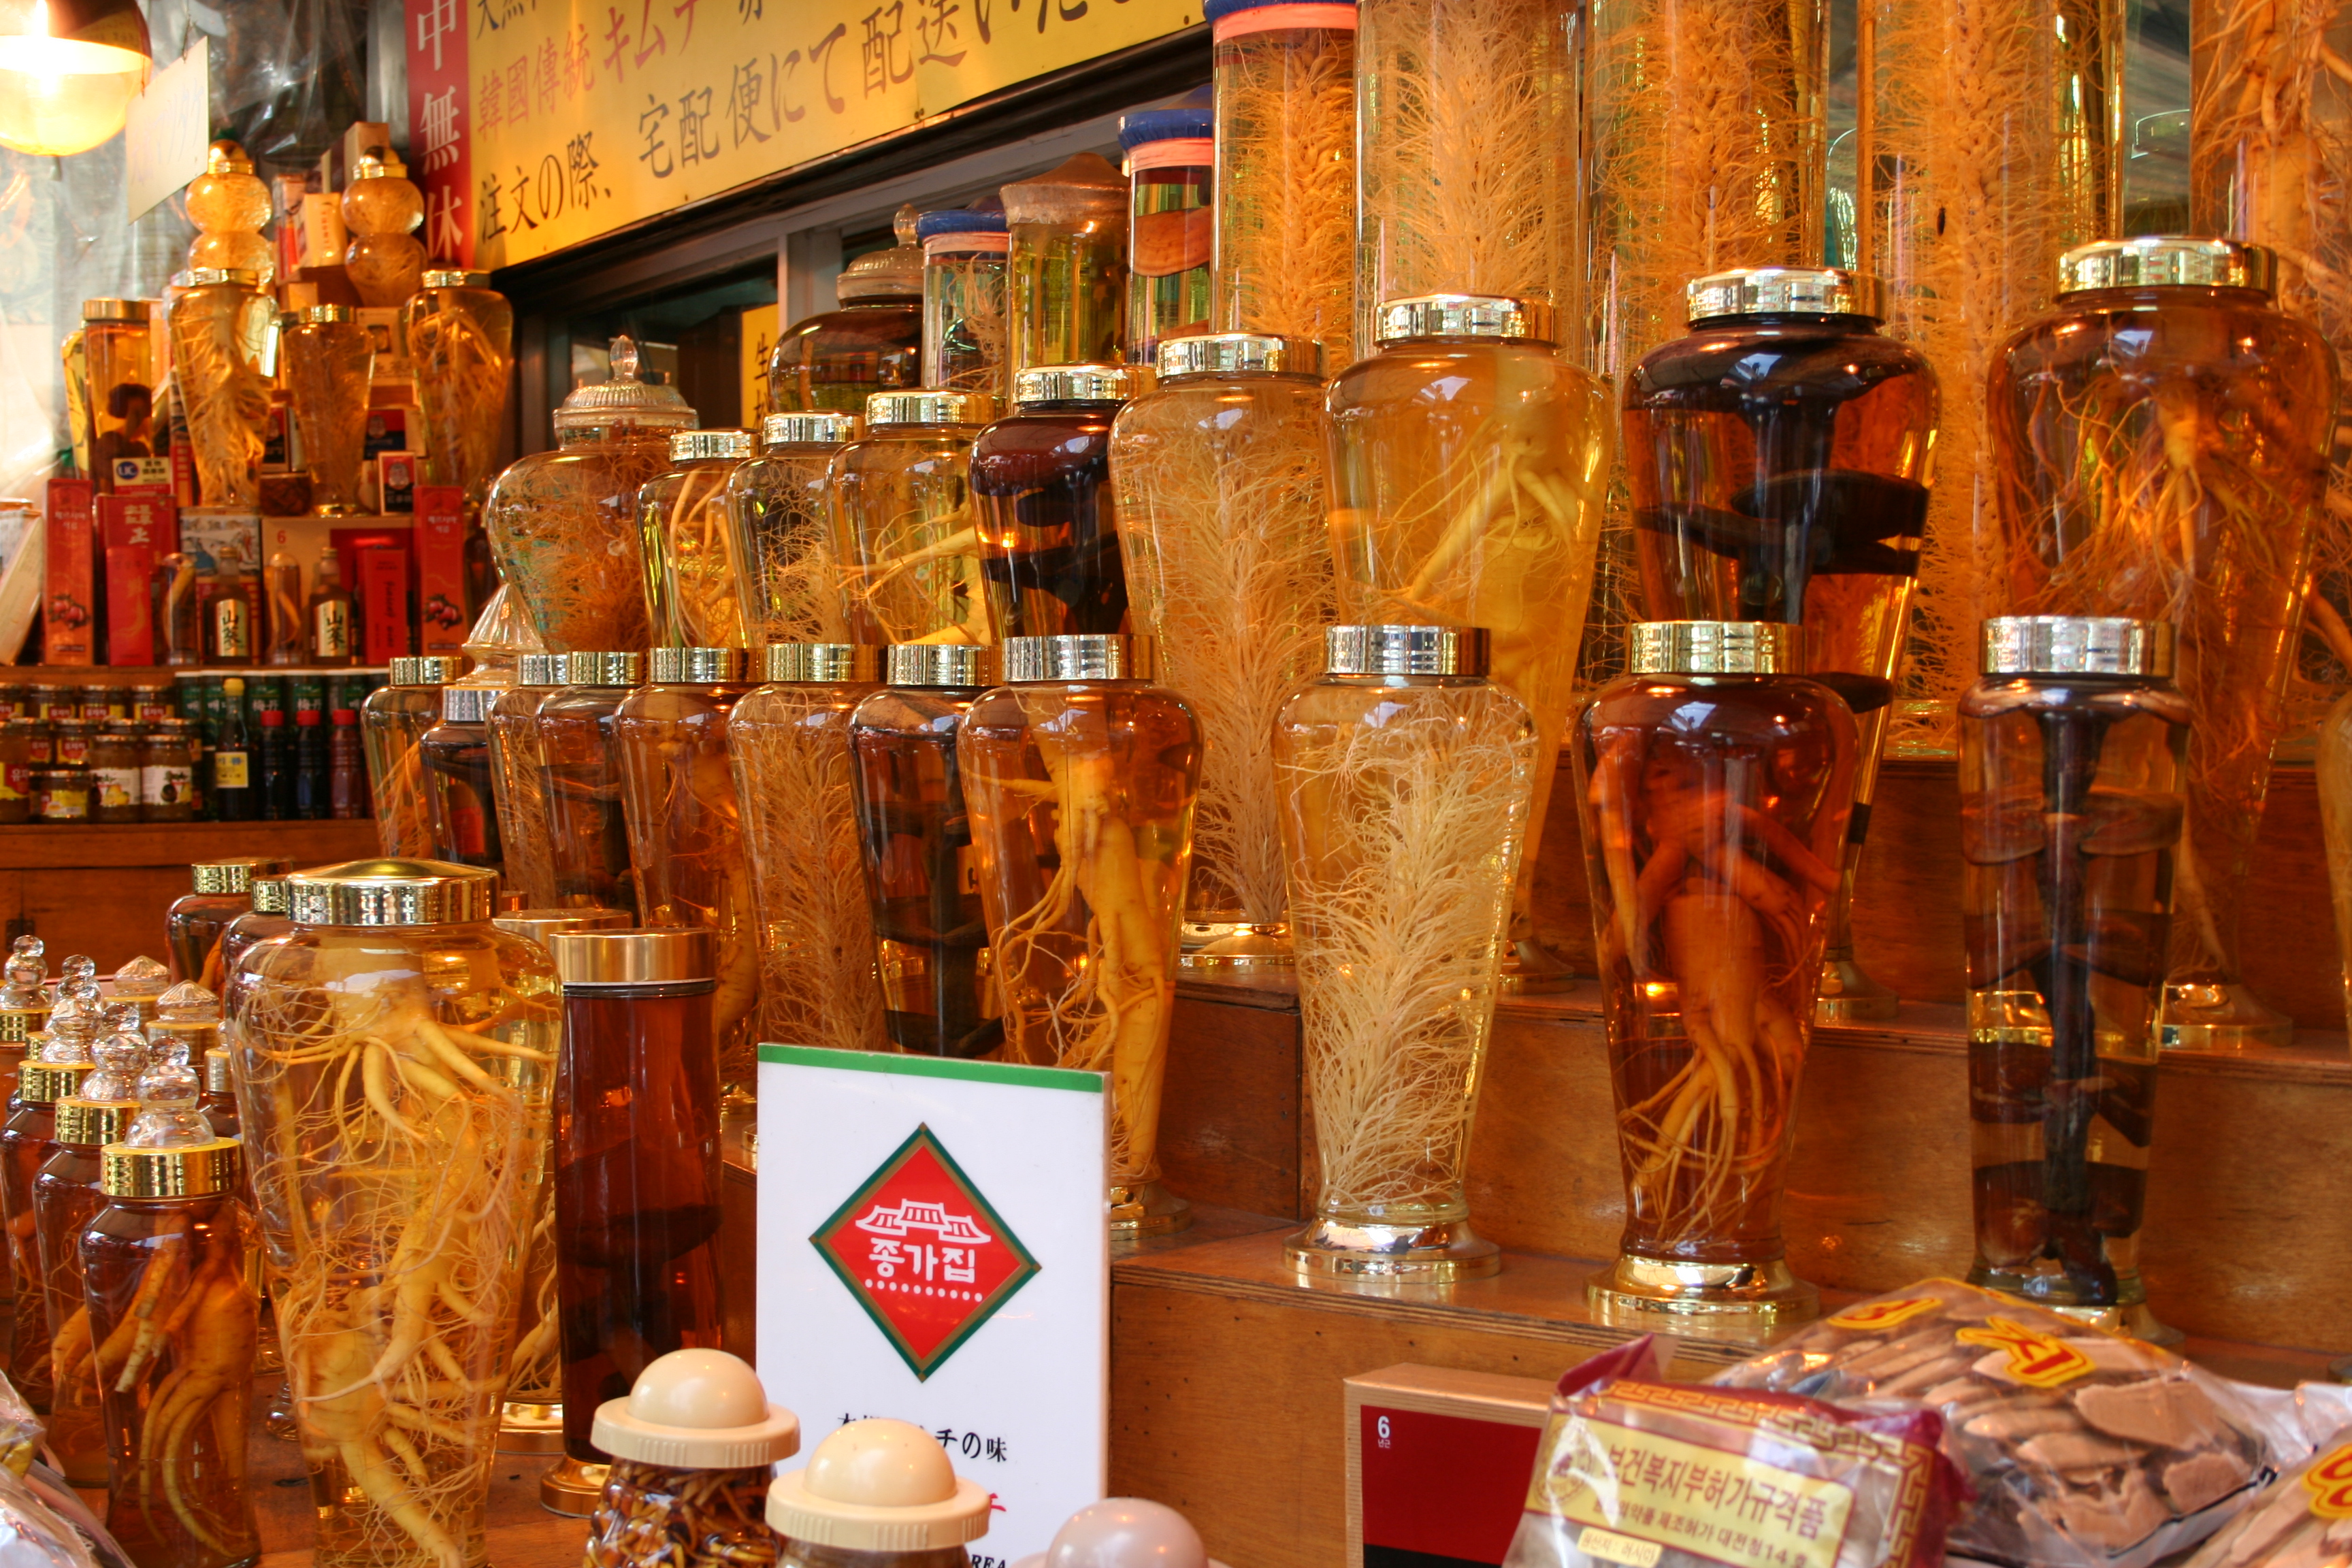 Ginseng at Namdaemun Market in Seoul